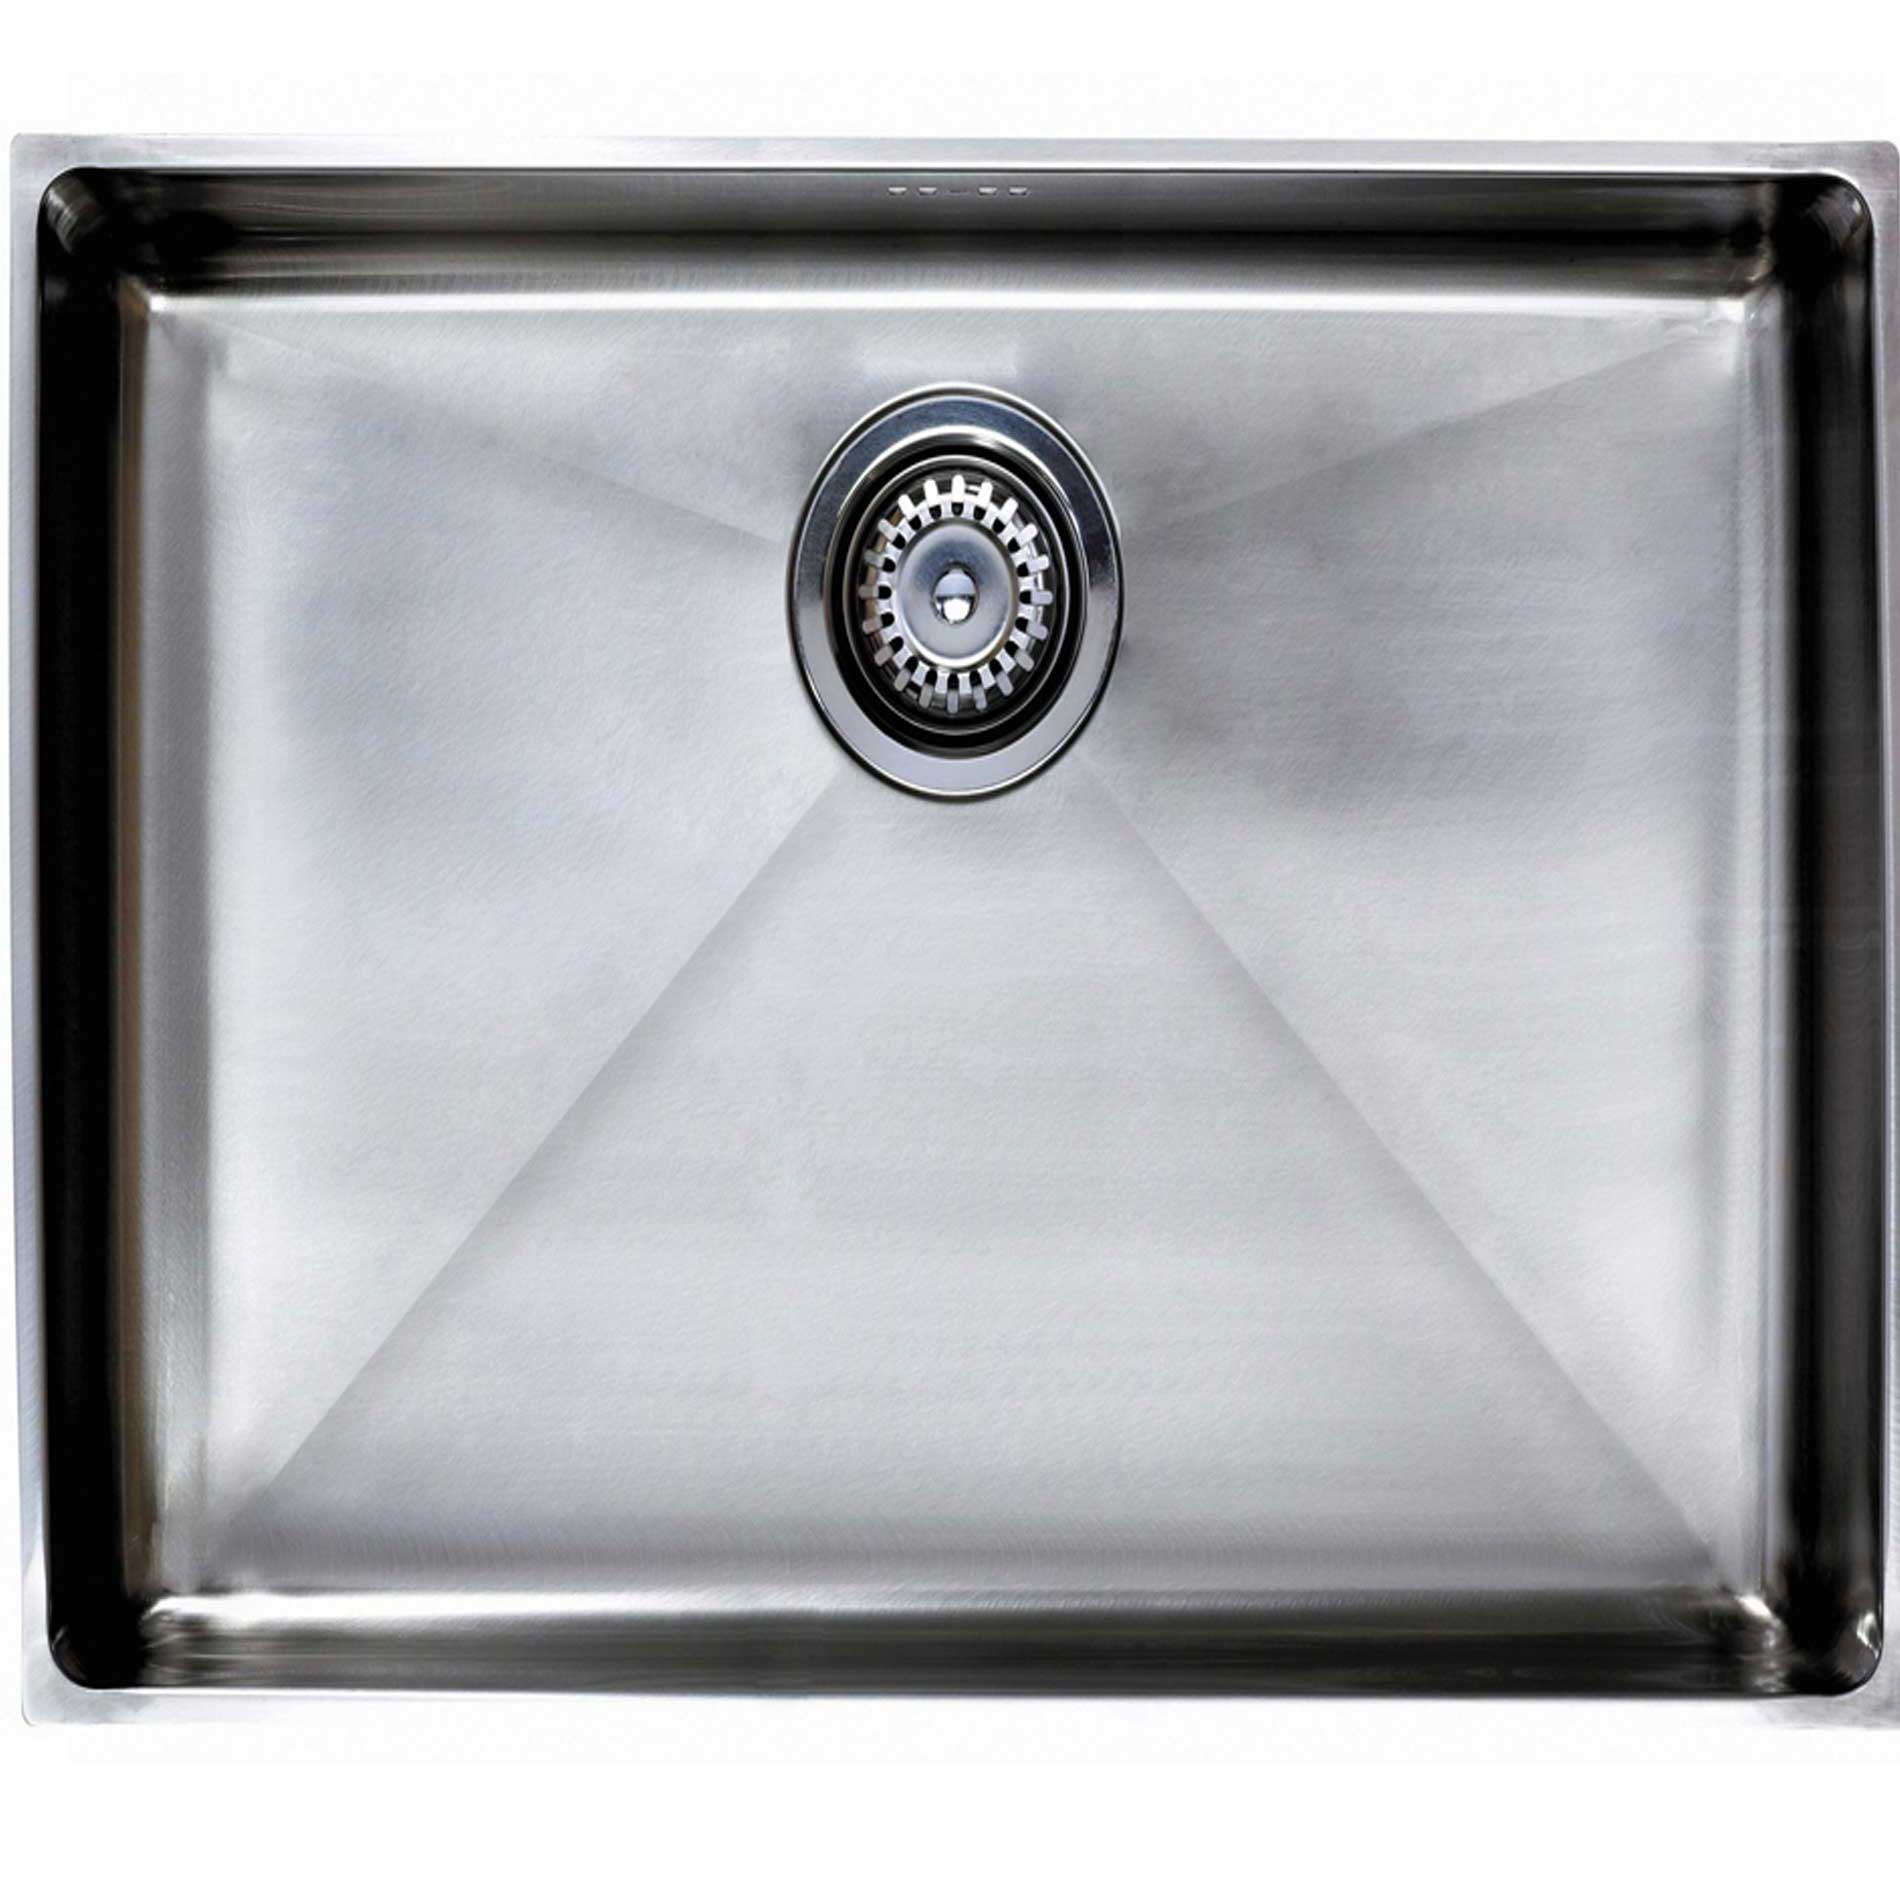 astracast onyx extra large bowl 4070 stainless steel sink